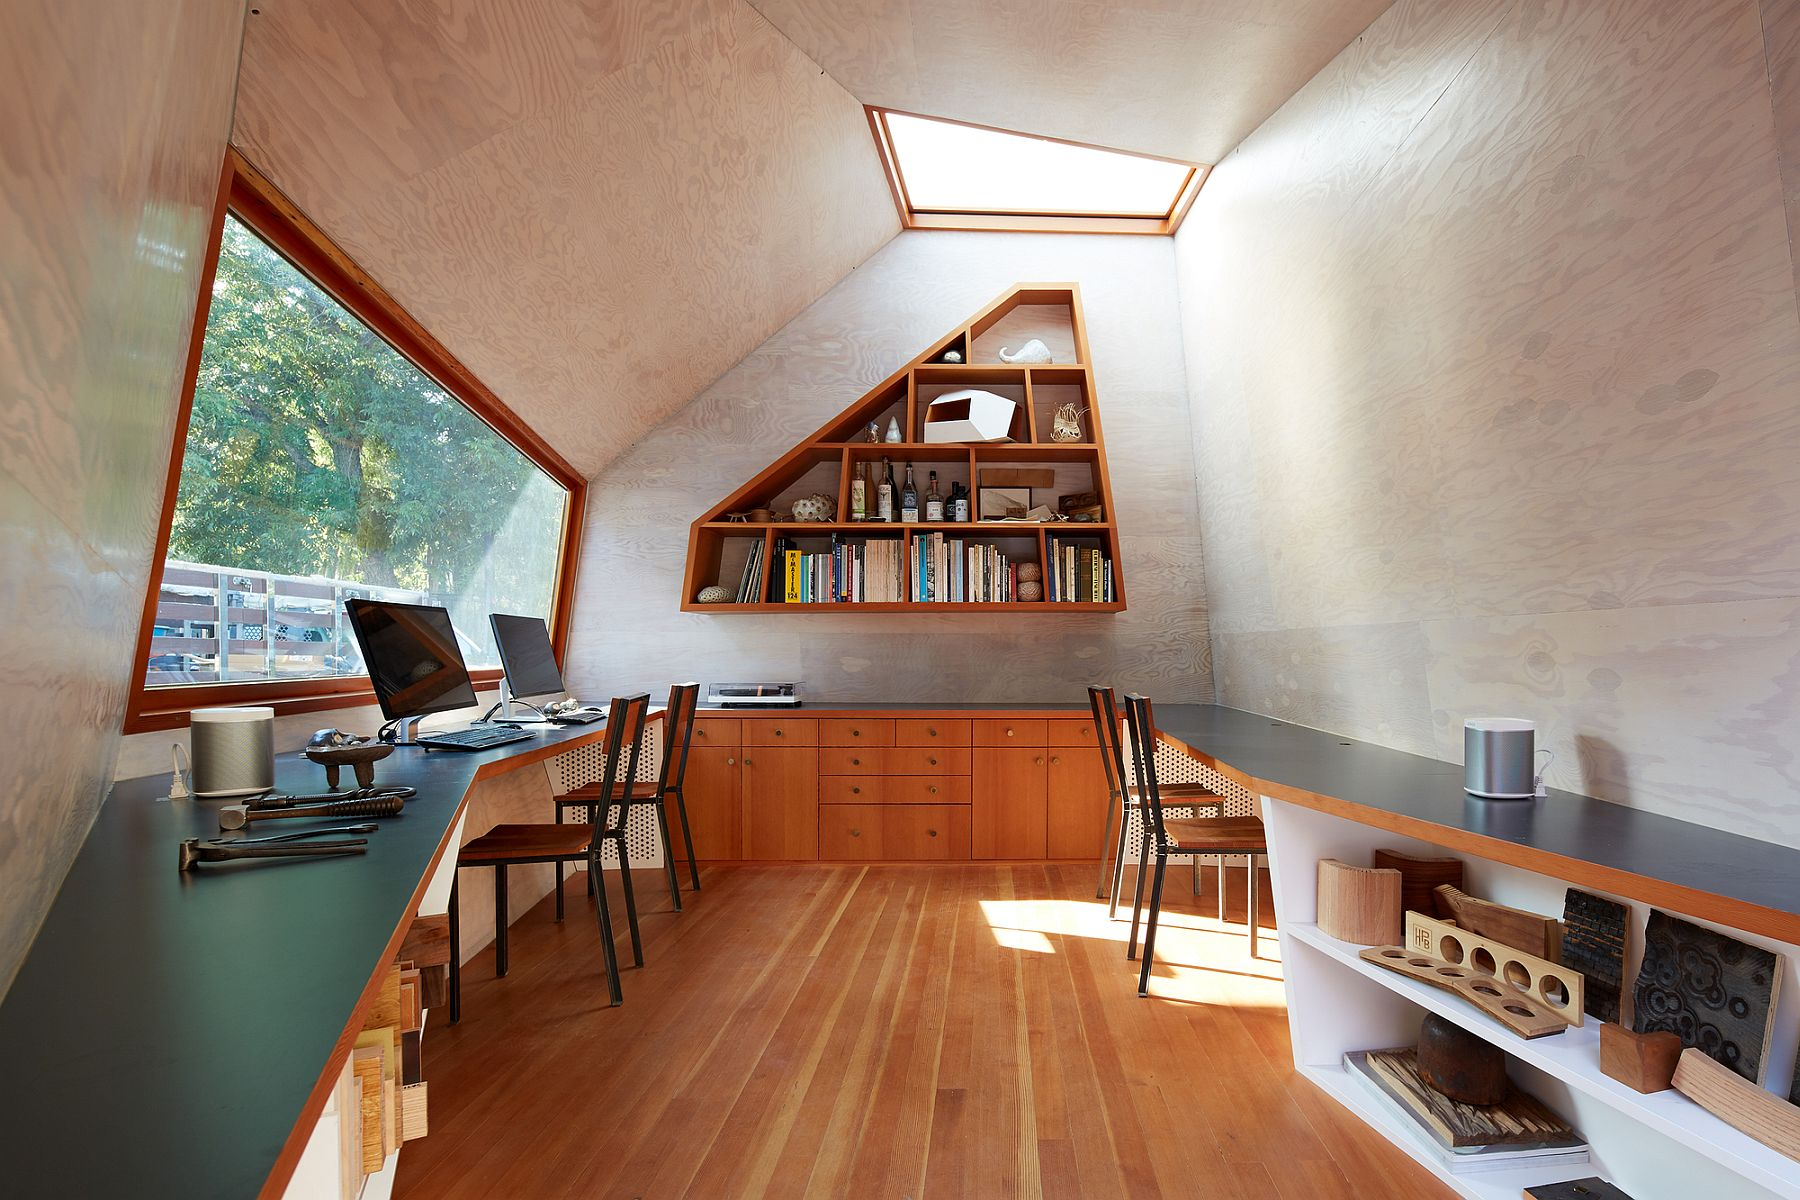 Custom skylight designed to give the interior a flood of natural light